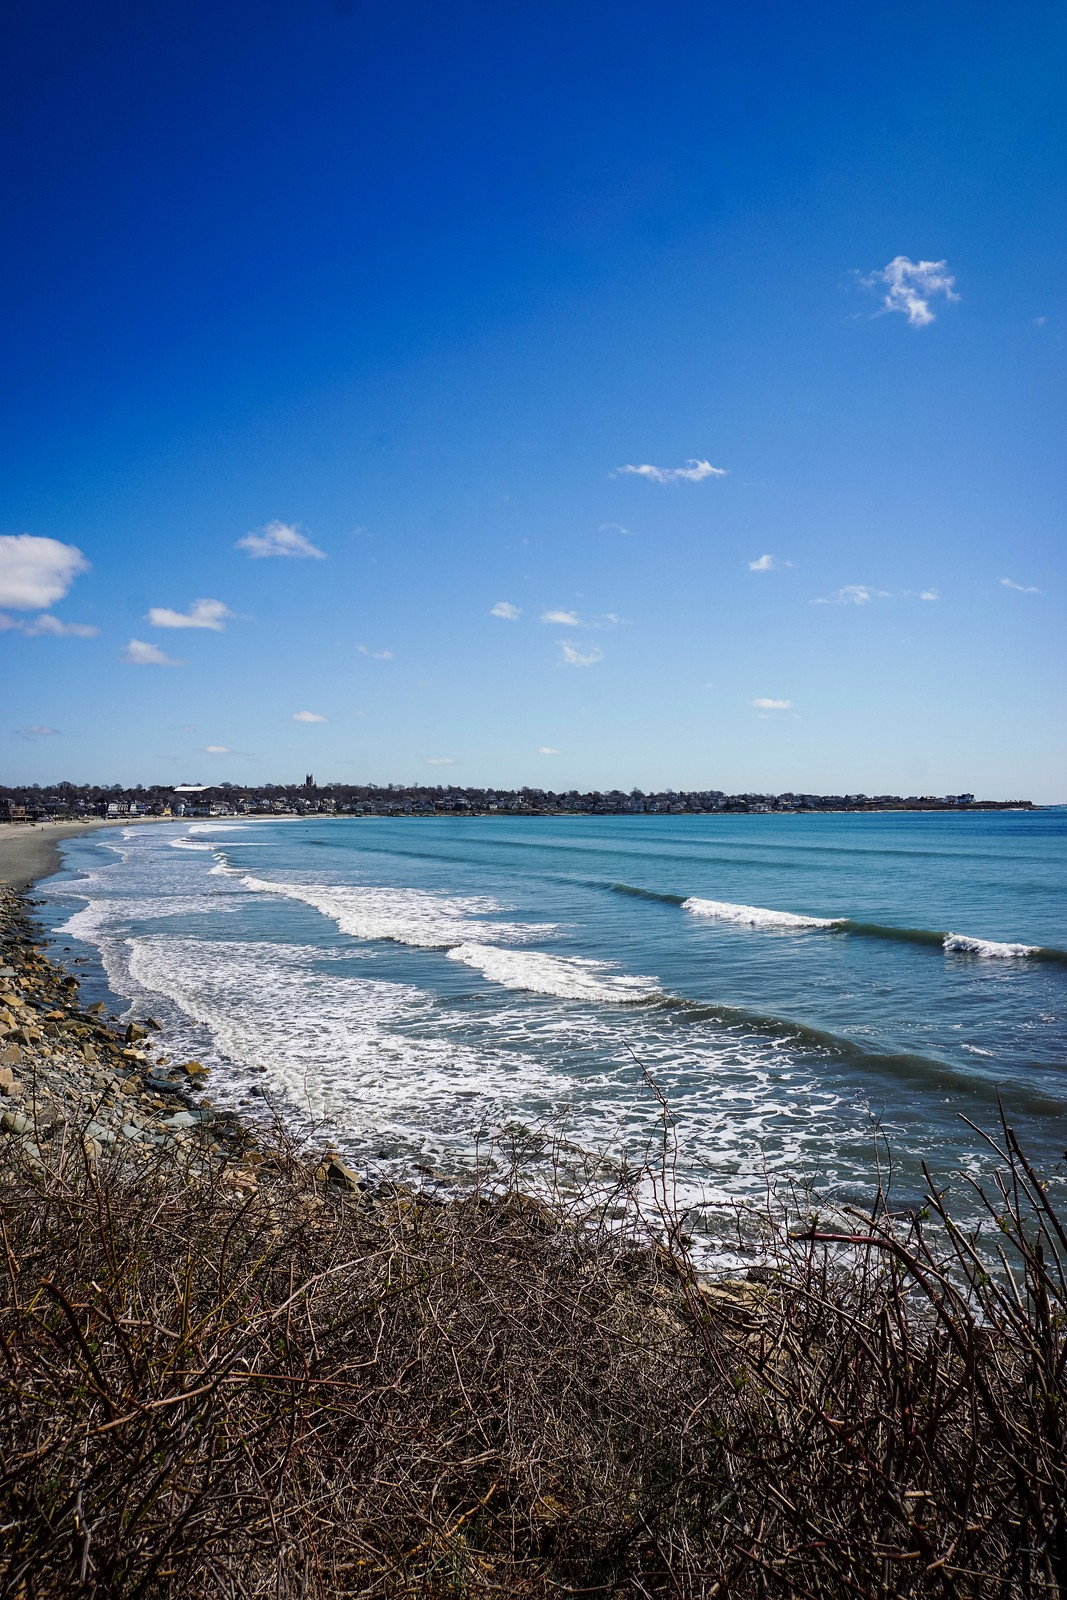 Easton Beach | Start of the Cliff Walk | 48 Hours in Newport Itinerary | A First Timer's Guide to 2 Days in Newport Rhode Island | What to do in Newport | Newport Travel Guide | Best Things to do in Newport | Best Places to Visit in Newport